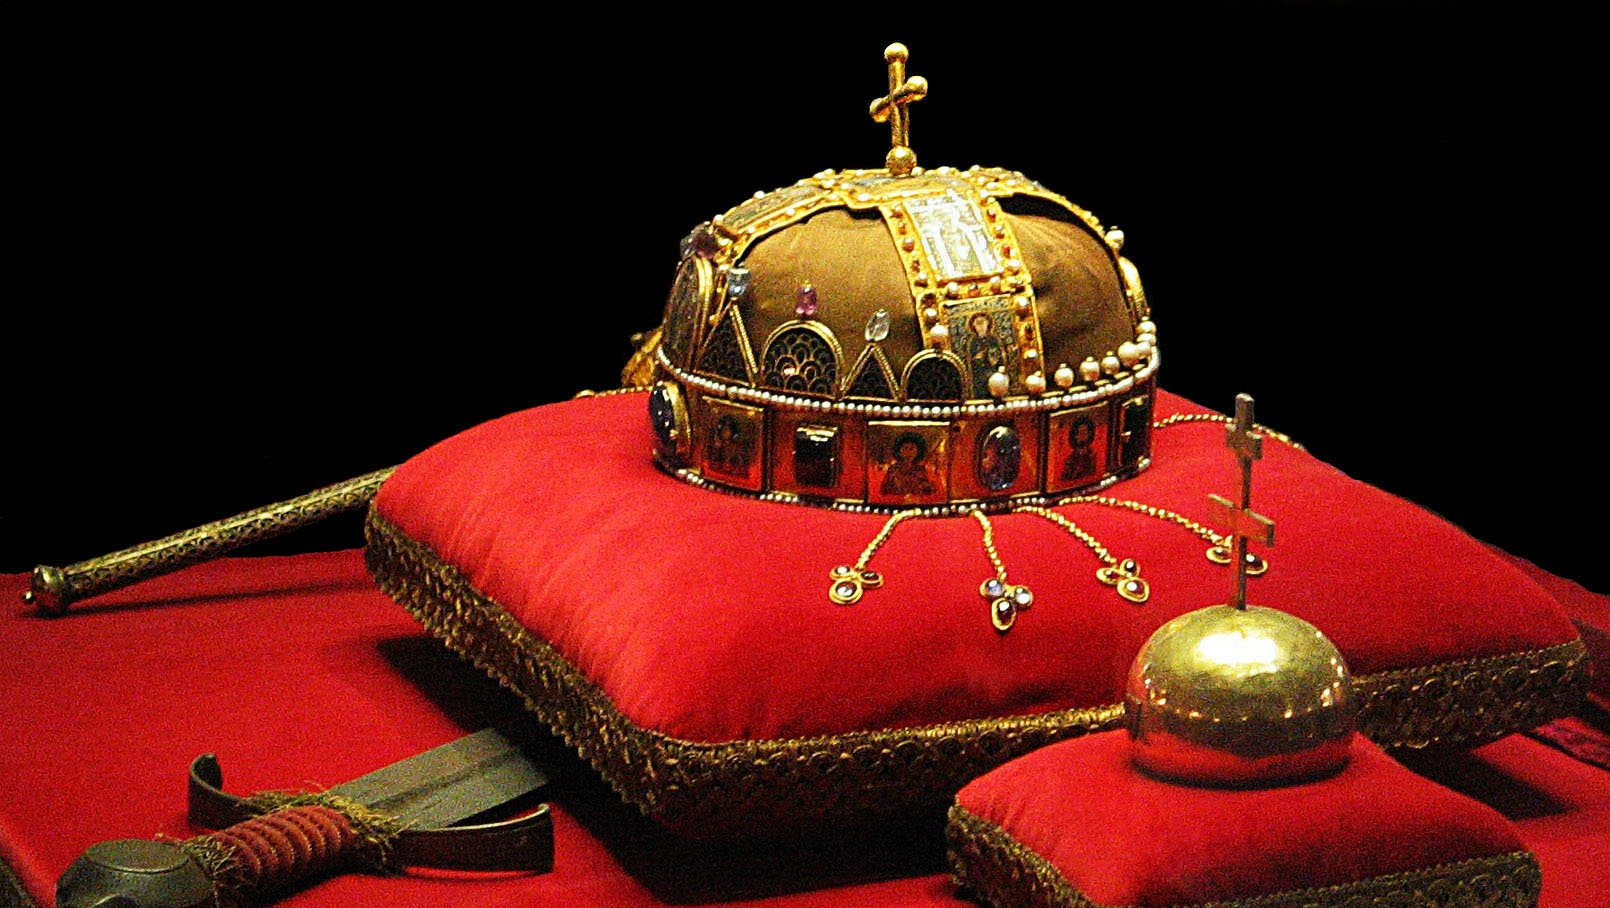 Hungarian Regalia - The Crown and Sword of King St. Stephen, the Scepter, and Orb are housed in the Hungarian Parliament Building.